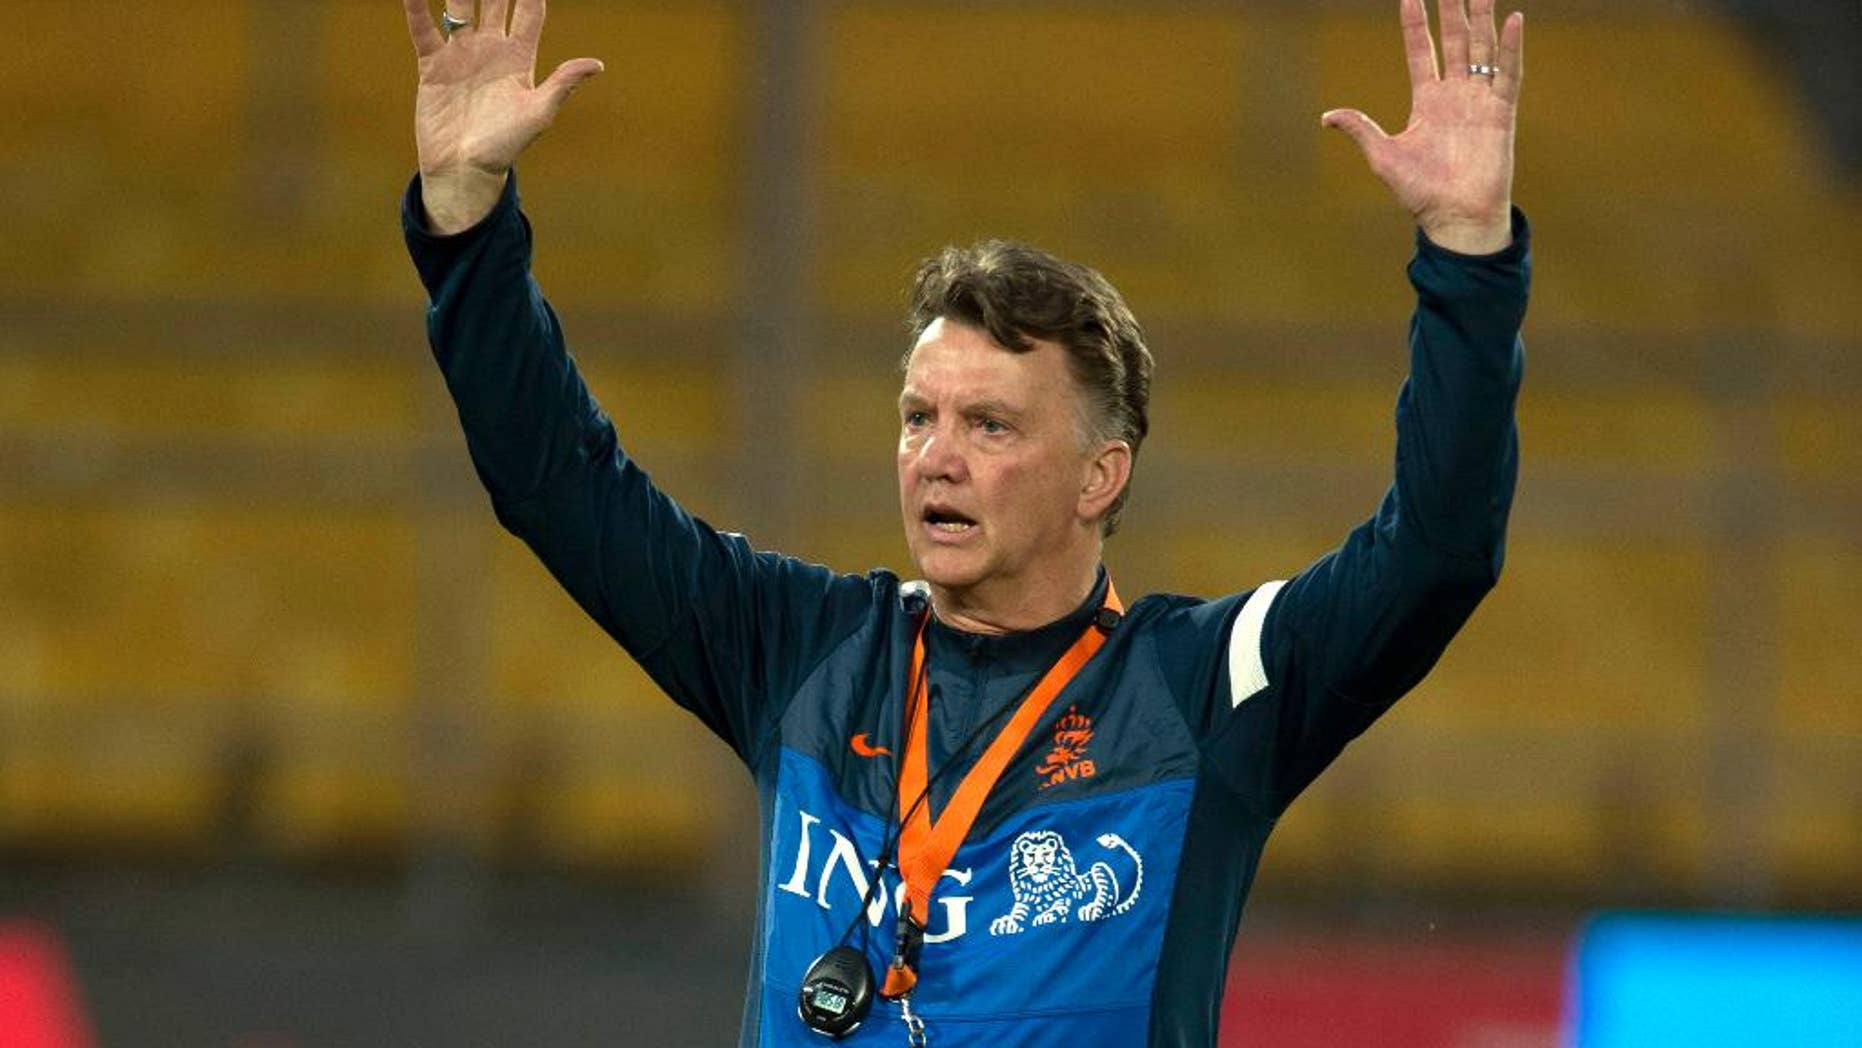 FILE - In this June 10, 2013,file photo Netherlands' coach Louis van Gaal gestures during practice, a day before a friendly soccer match against the Chinese national team at the Worker's Stadium in Beijing, China. Van Gaal, who will be replaced by Guus Hiddink after the tournament, has rebuilt the team to play more attractive attacking football. (AP Photo/Ng Han Guan, File)